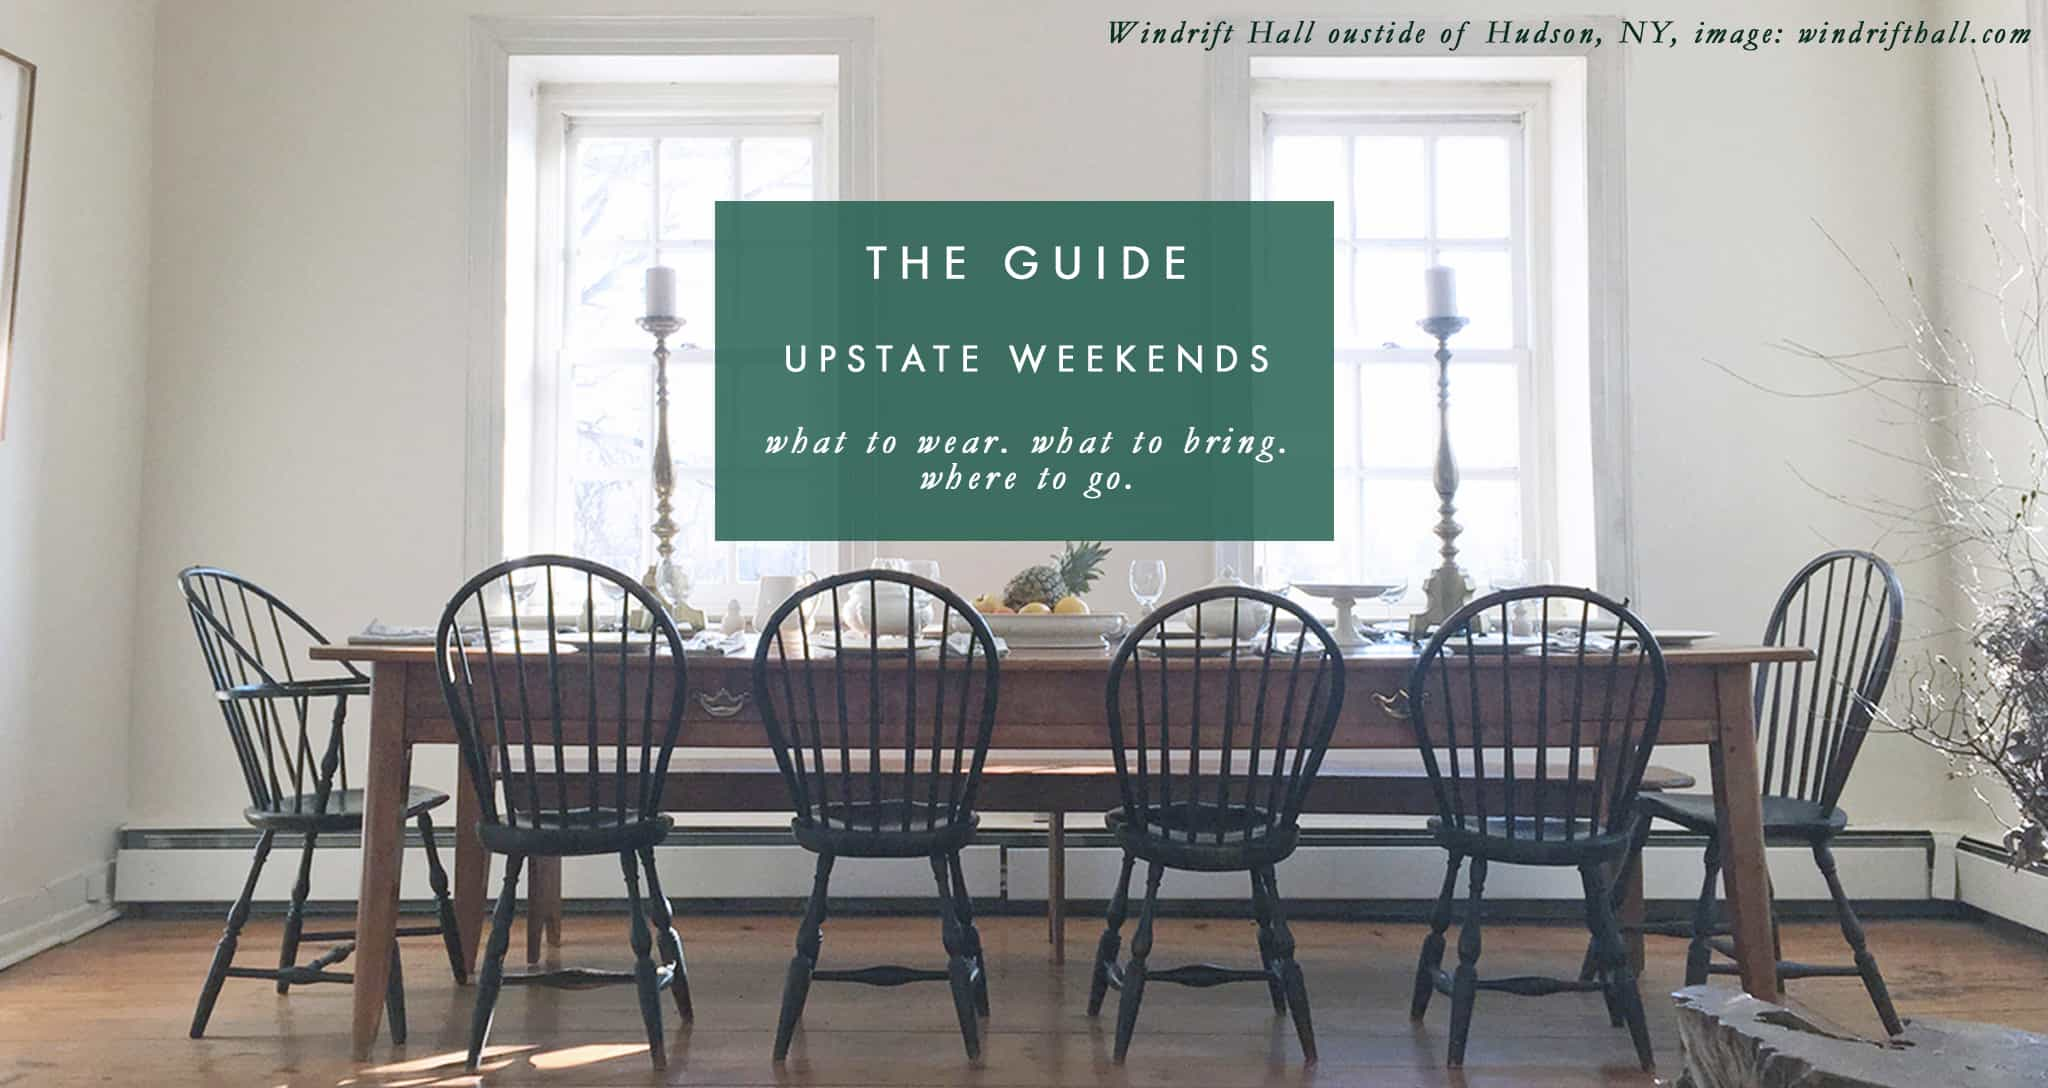 THE GUIDE: Upstate Weekends 18